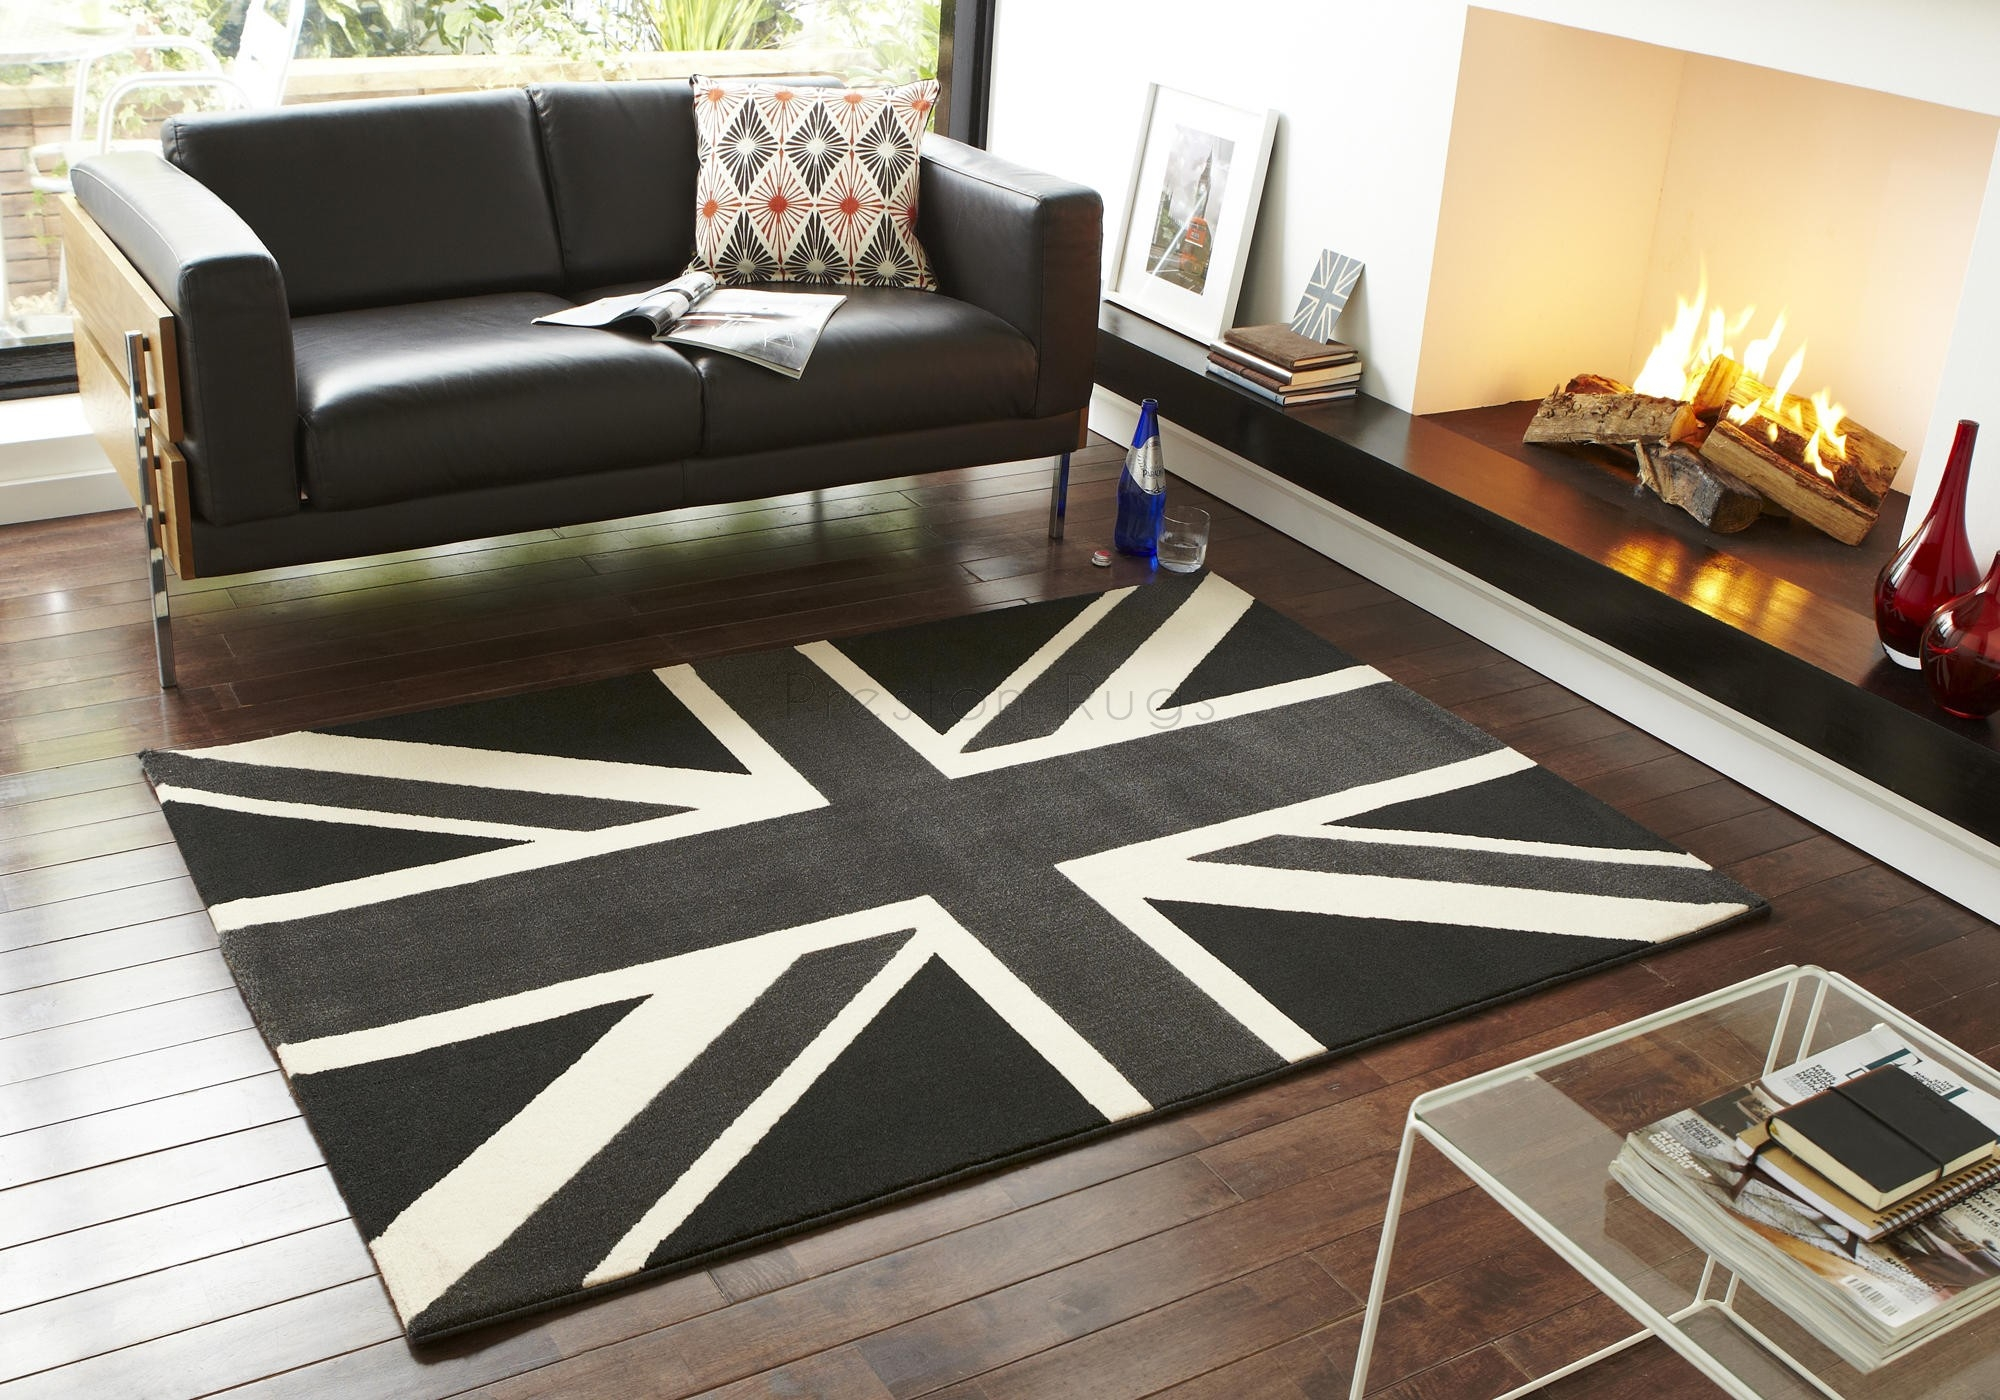 British Flag Rugs Roselawnlutheran In British Flag Rugs (View 9 of 15)